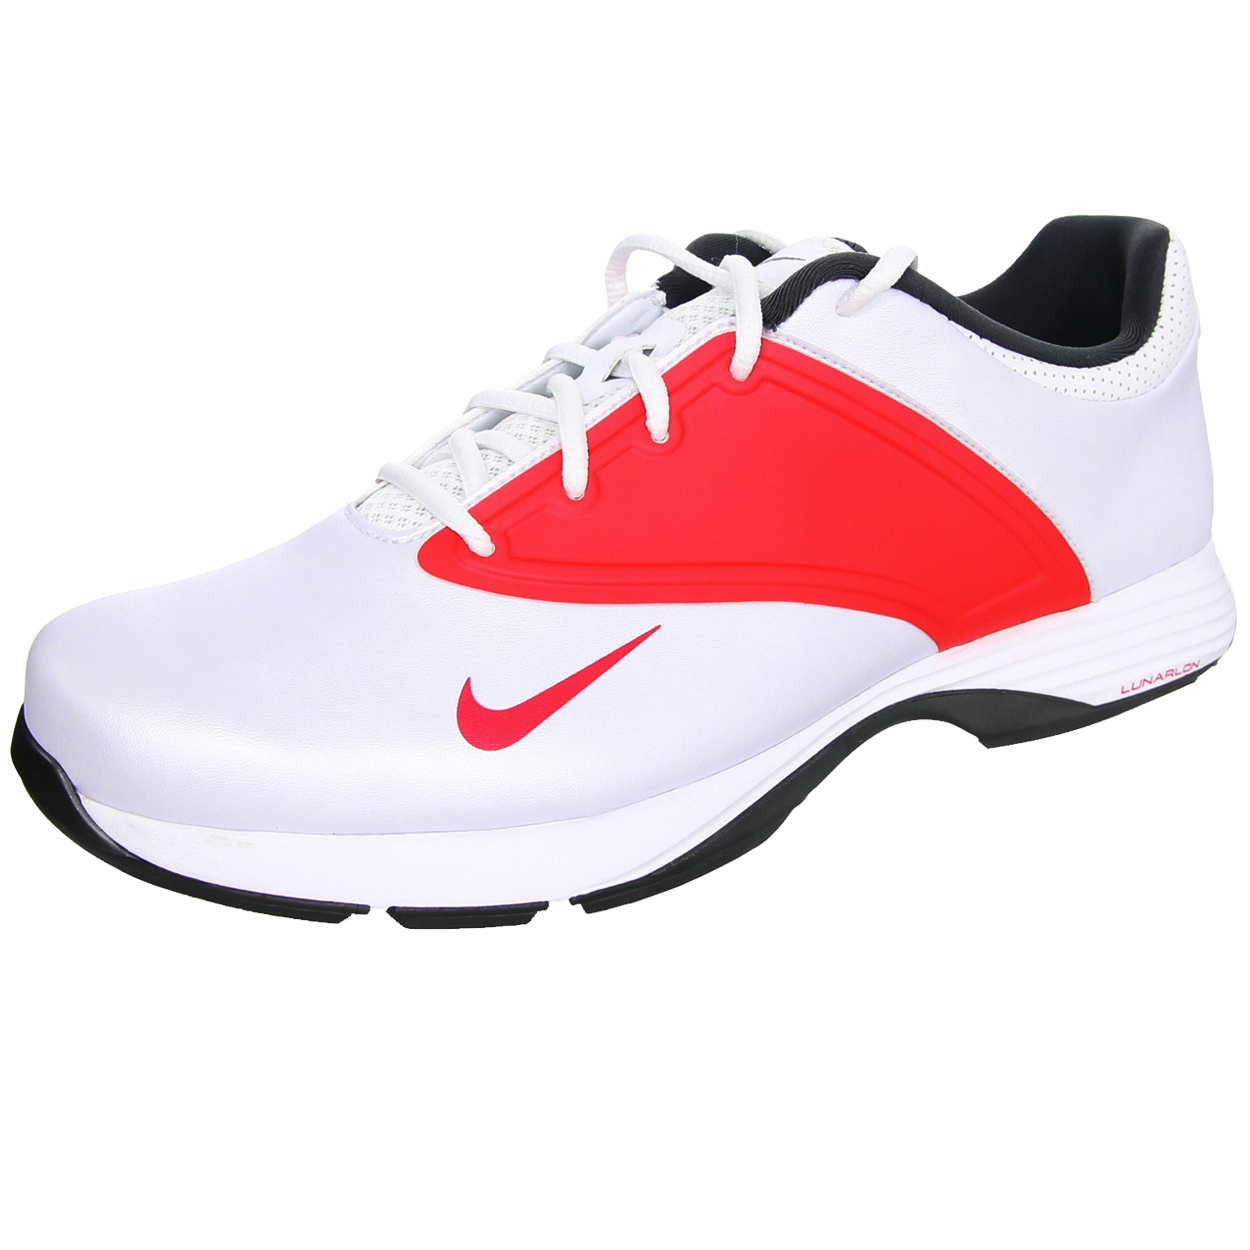 Nike Lunar Saddle Golf Shoes